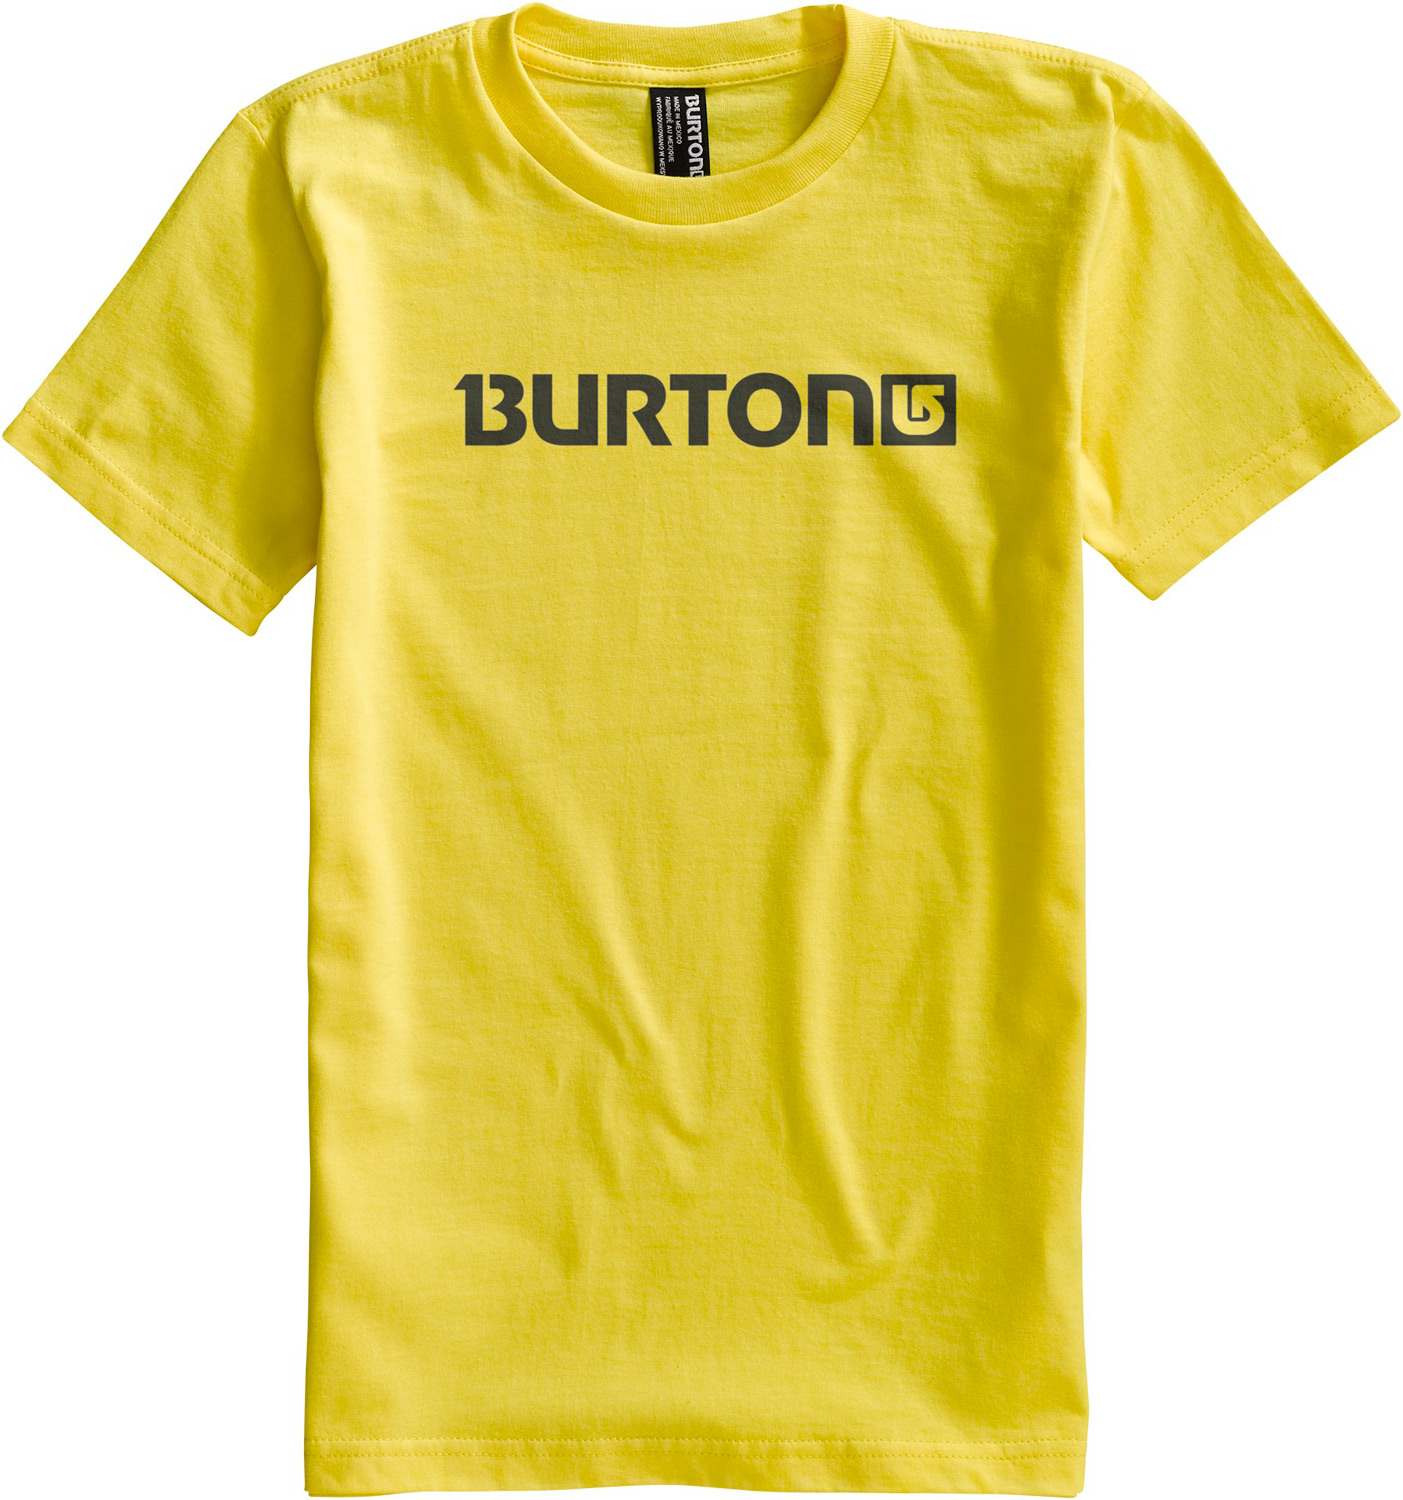 Snowboard Key Features of The Burton Logo Horizontal T-Shirt: Regular Fit Crew Neck Short Sleeve 100% Cotton Screen Print on Front and Back Regular Fit XS-XL - $13.95